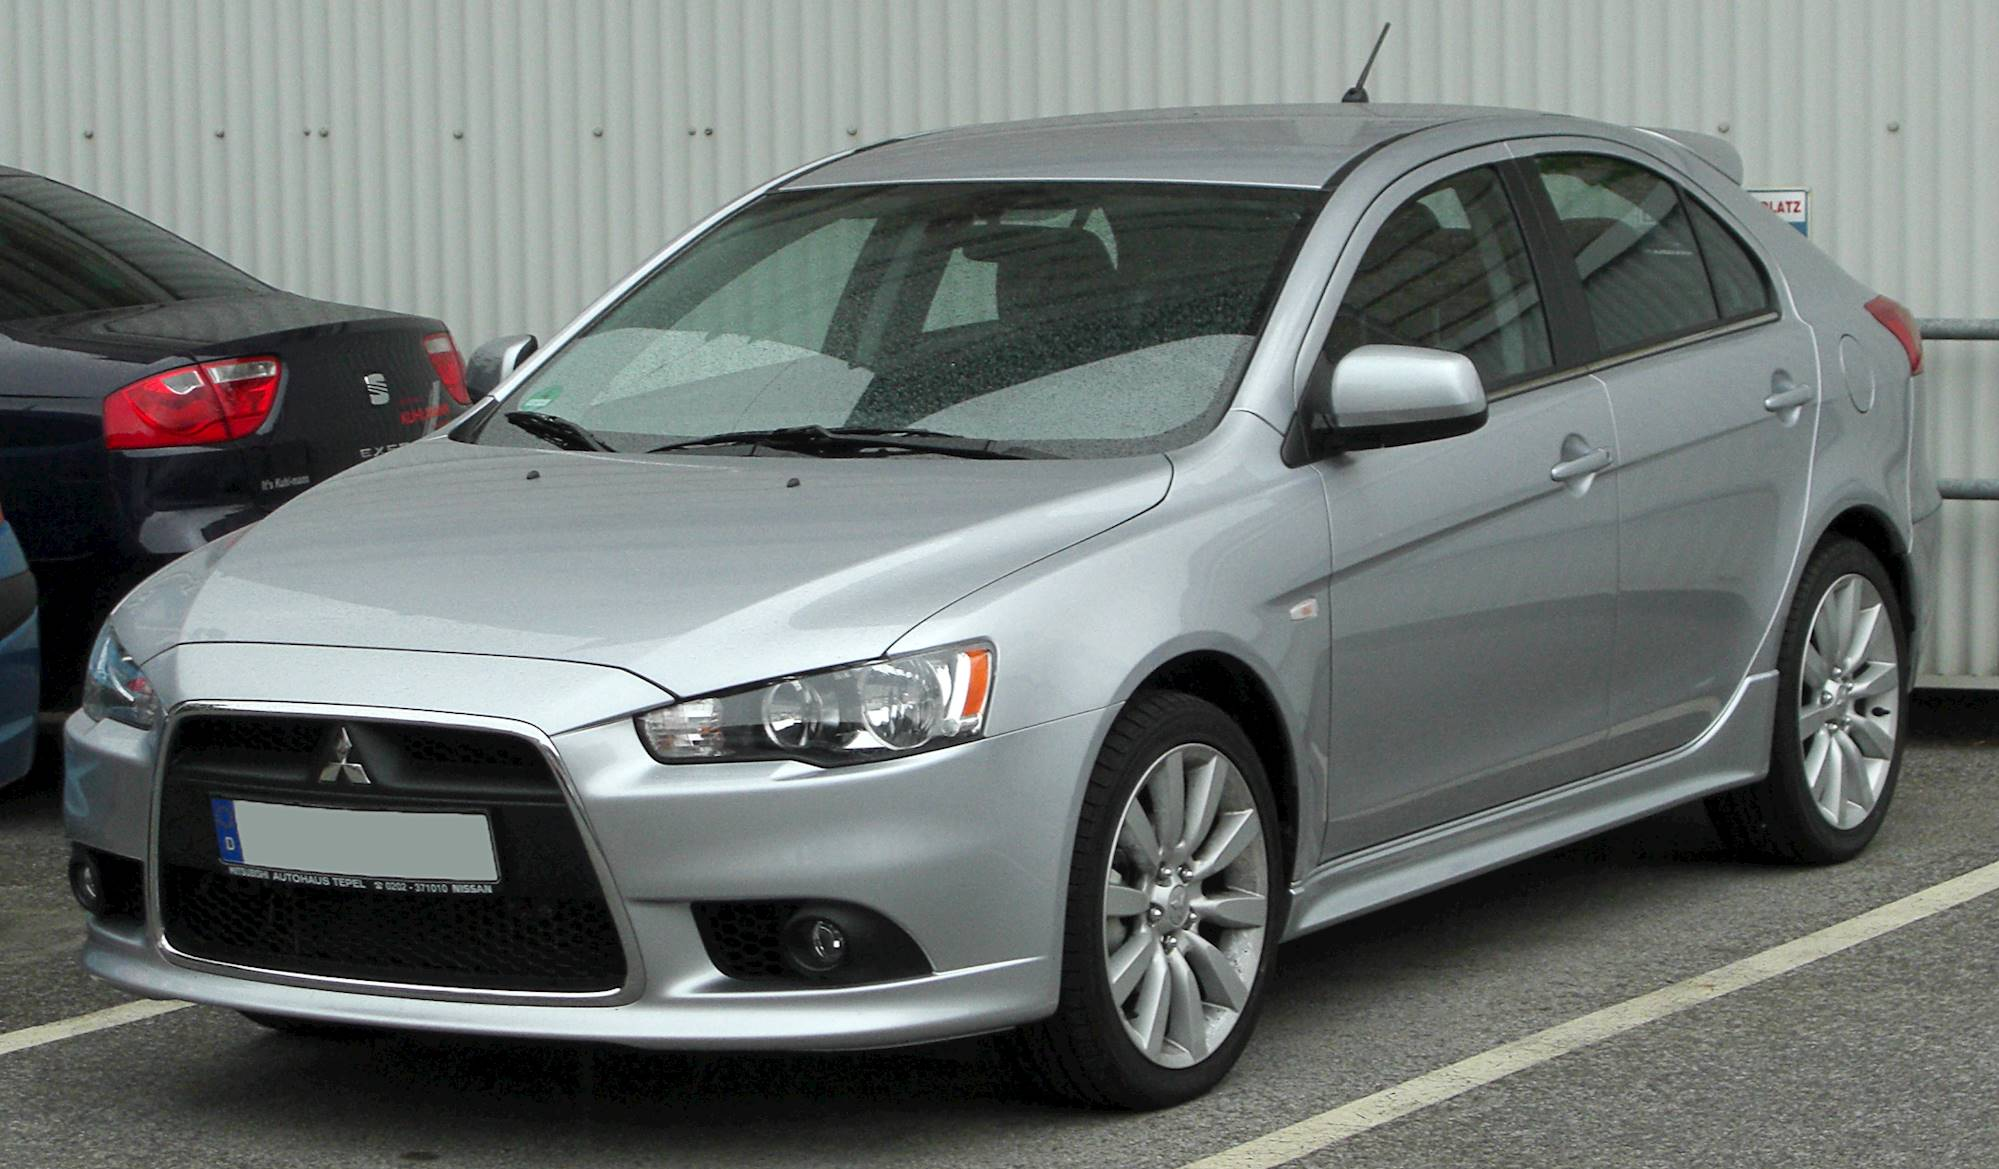 2014 Mitsubishi Lancer GT - Sedan 2.4L Manual